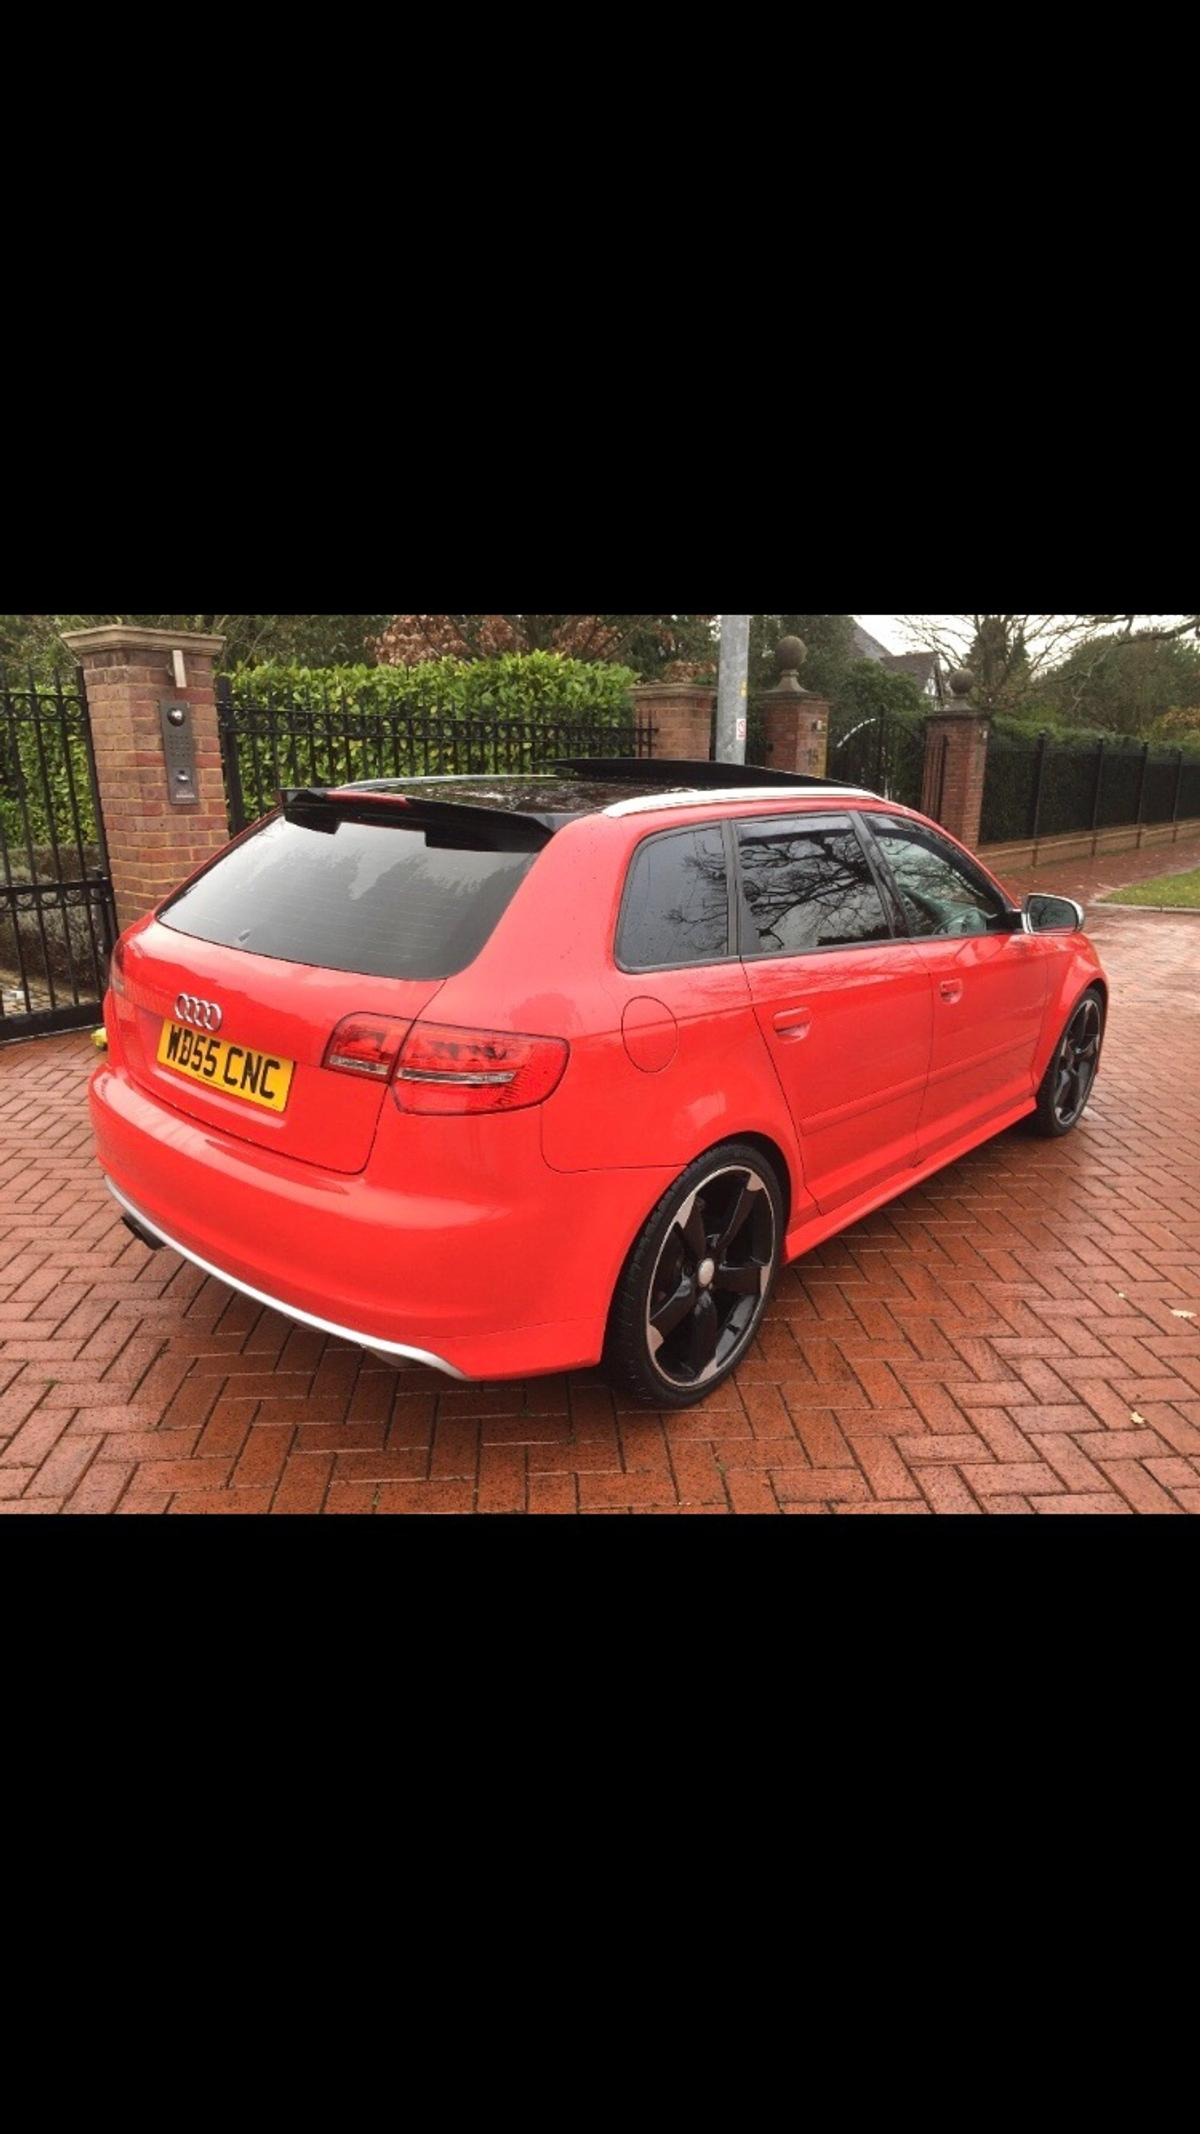 AUDI A3 QUATTRO S LINE SPORTBACK RS3 REP in WS5 Walsall for